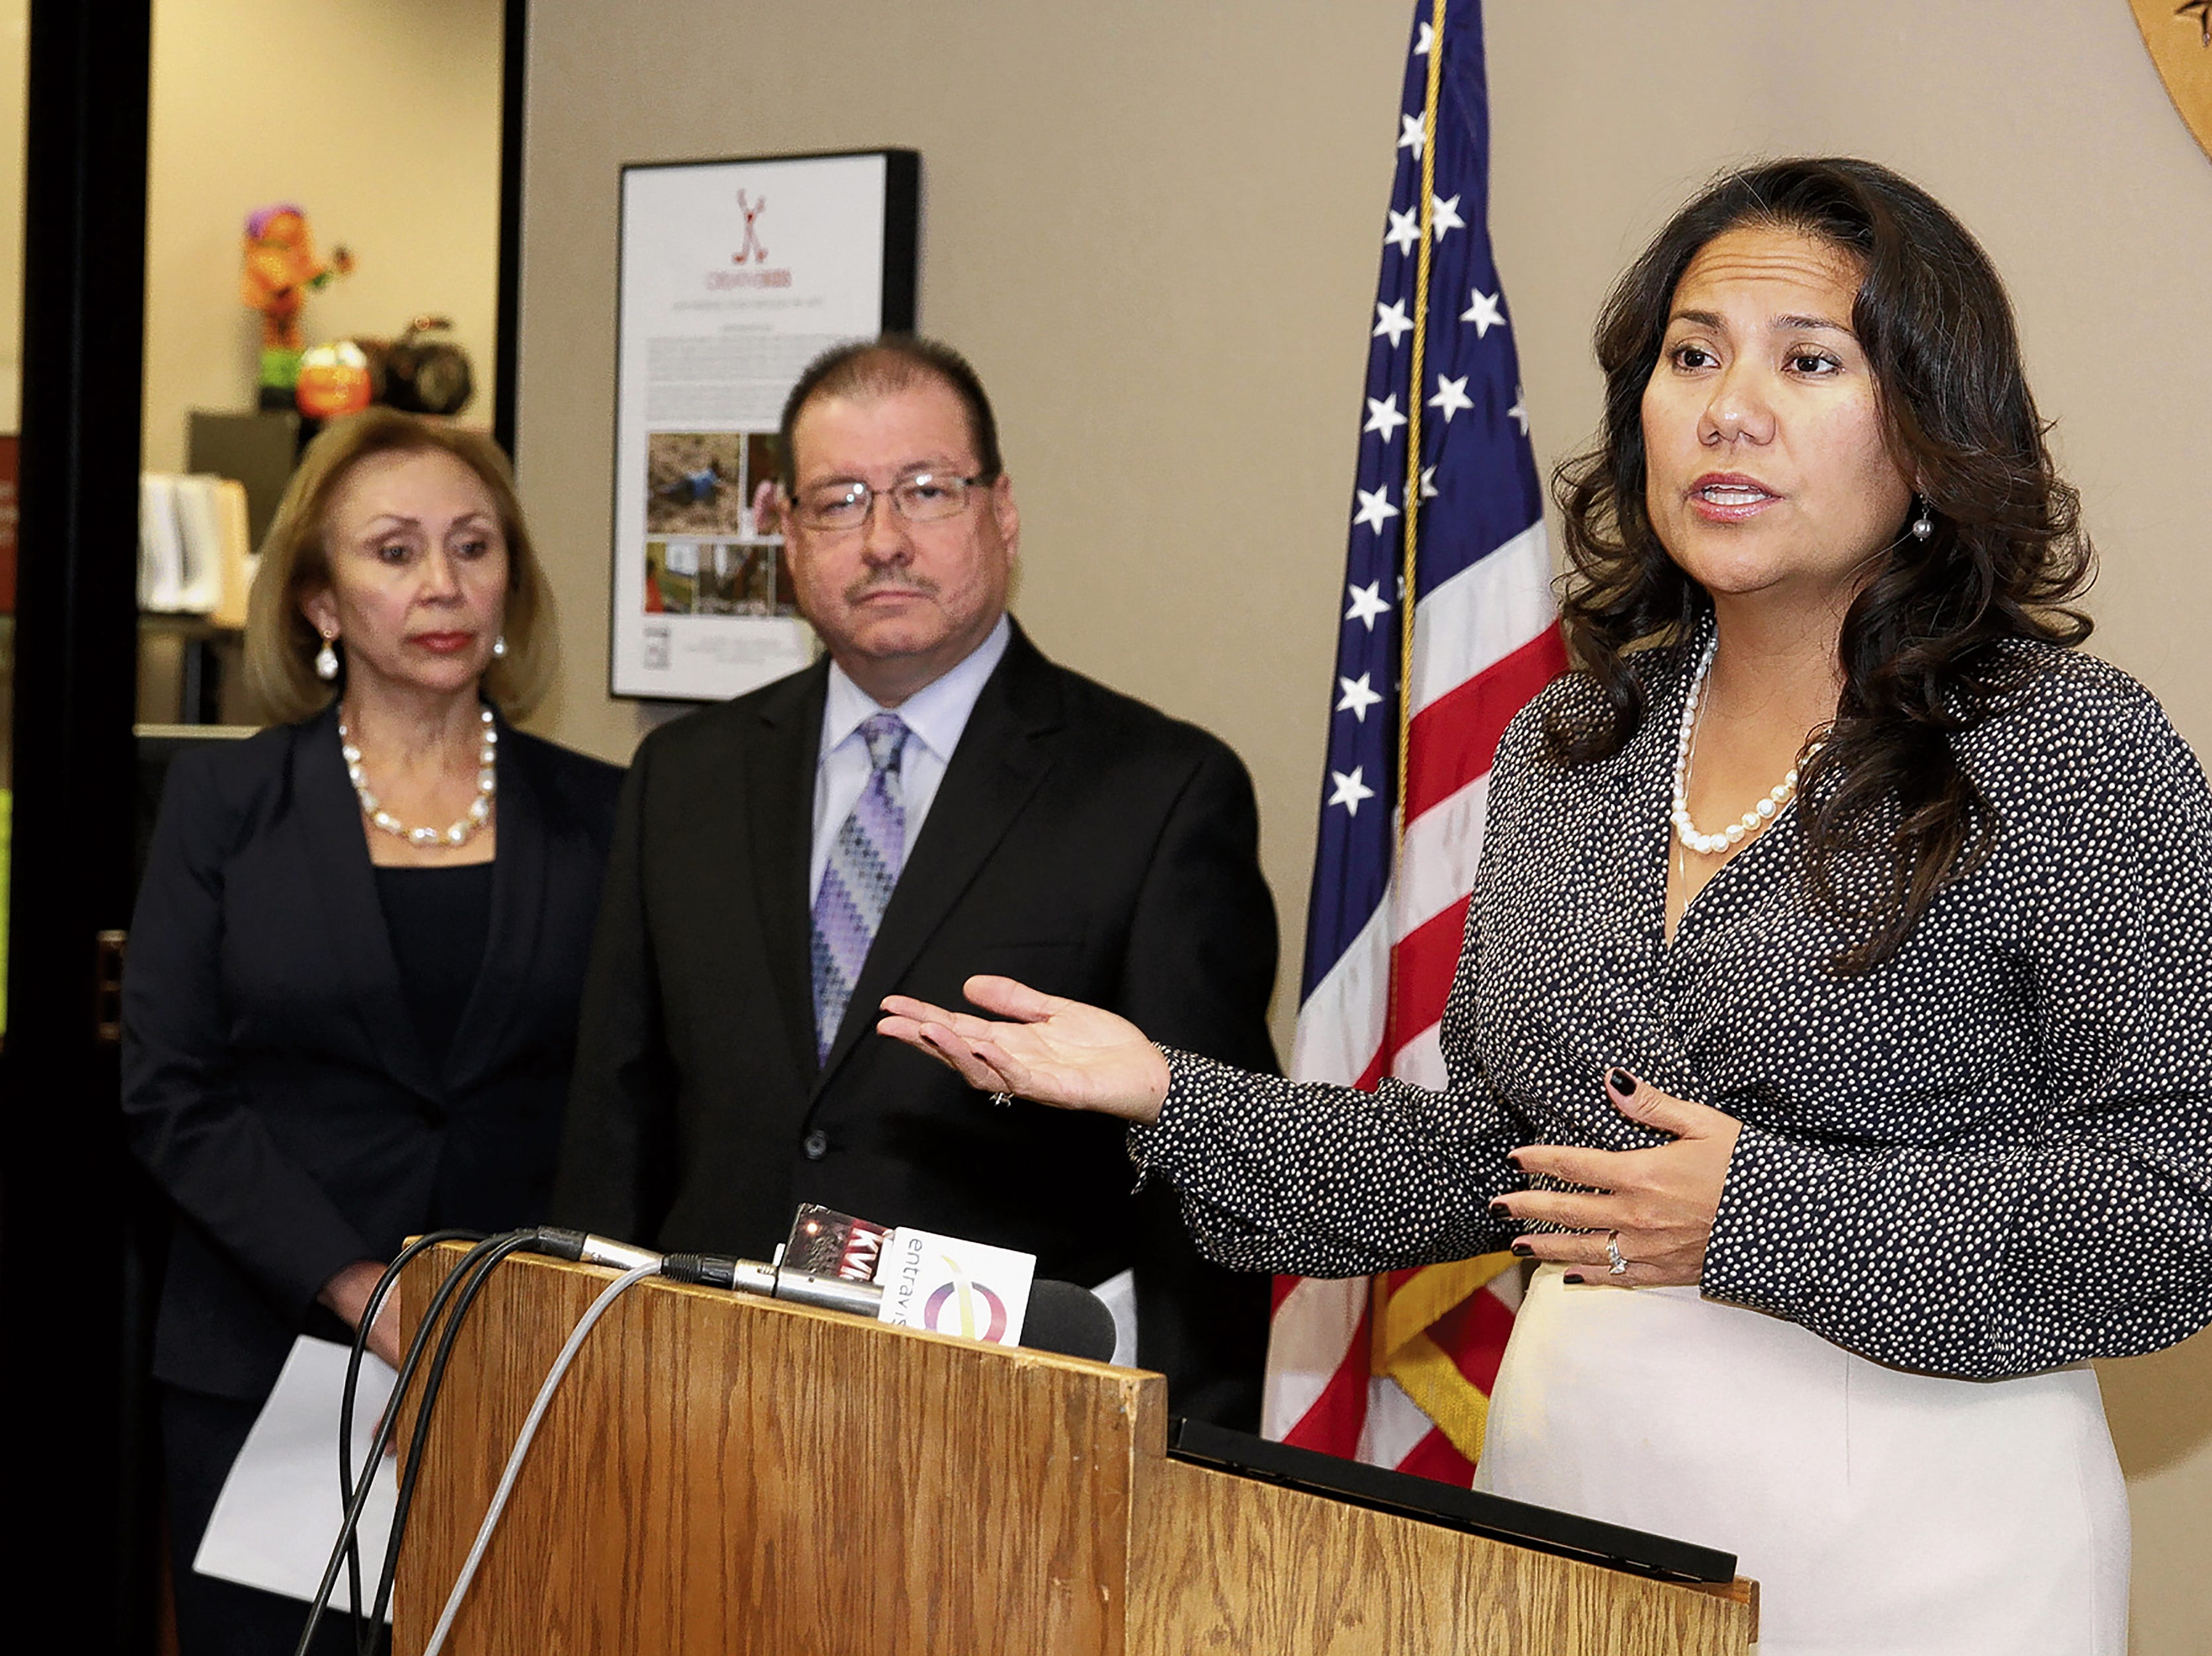 County Judge Veronica Escobar talks about the new cases that have been flagged under the Scofflaw, whcih will prevent an individual from renewing their vehicle registration if they are 90 days delinquent in paying and fines/fees owed on A. B. and C class misdemeanor cases. With Escobar are County Clerk Delia Briones and Chief Deputy Tax Assessor Collector Frank Ortiz.